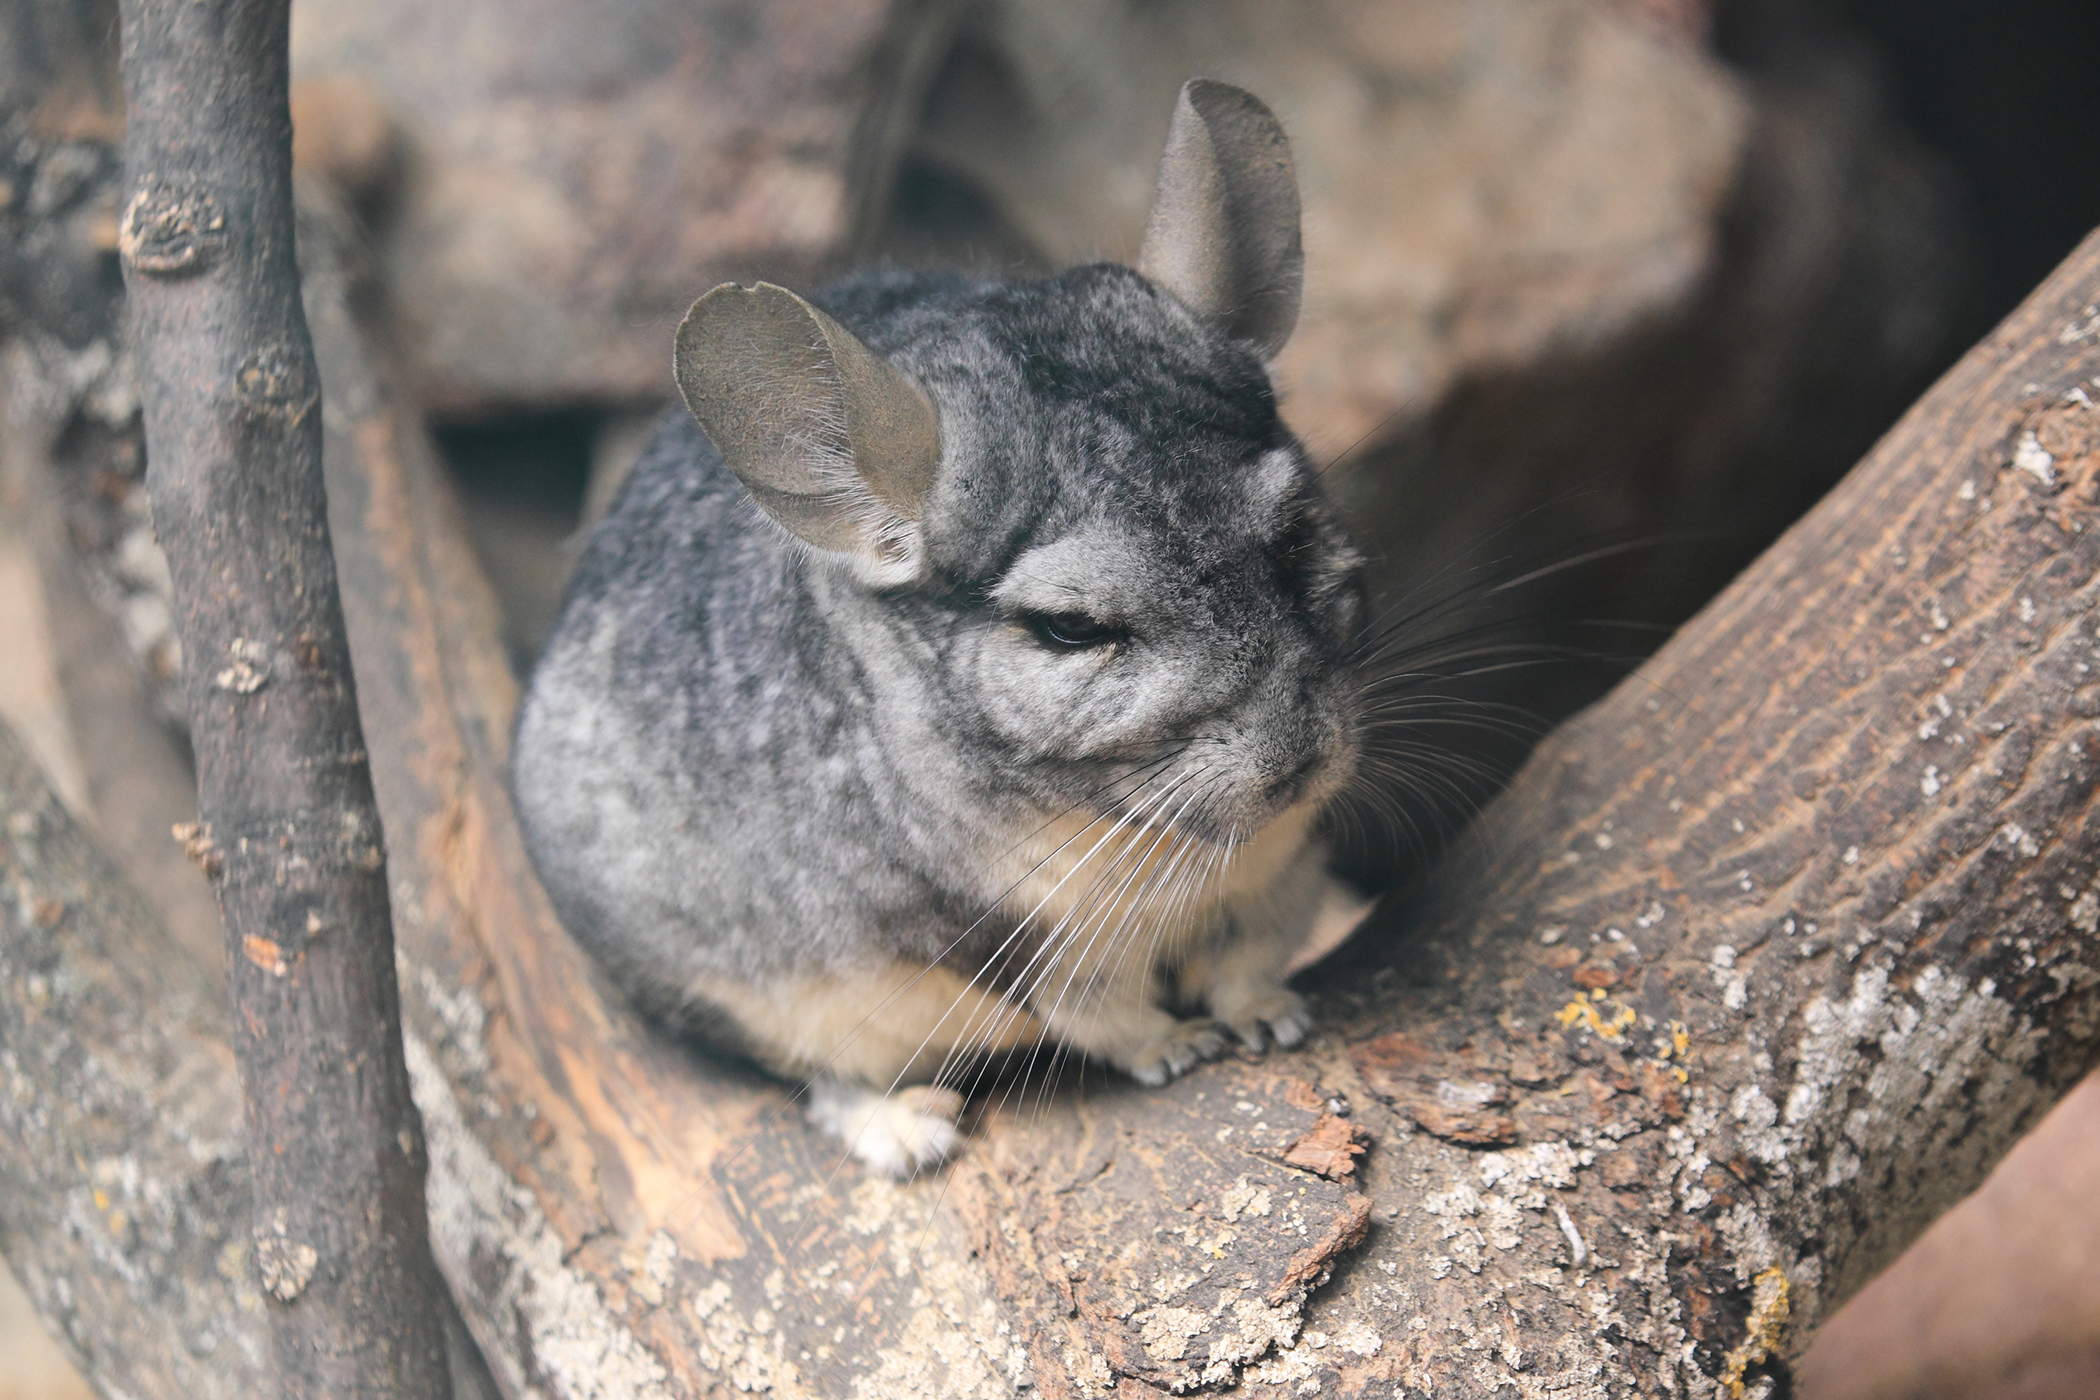 Neurological Protozoa Infection in Chinchillas